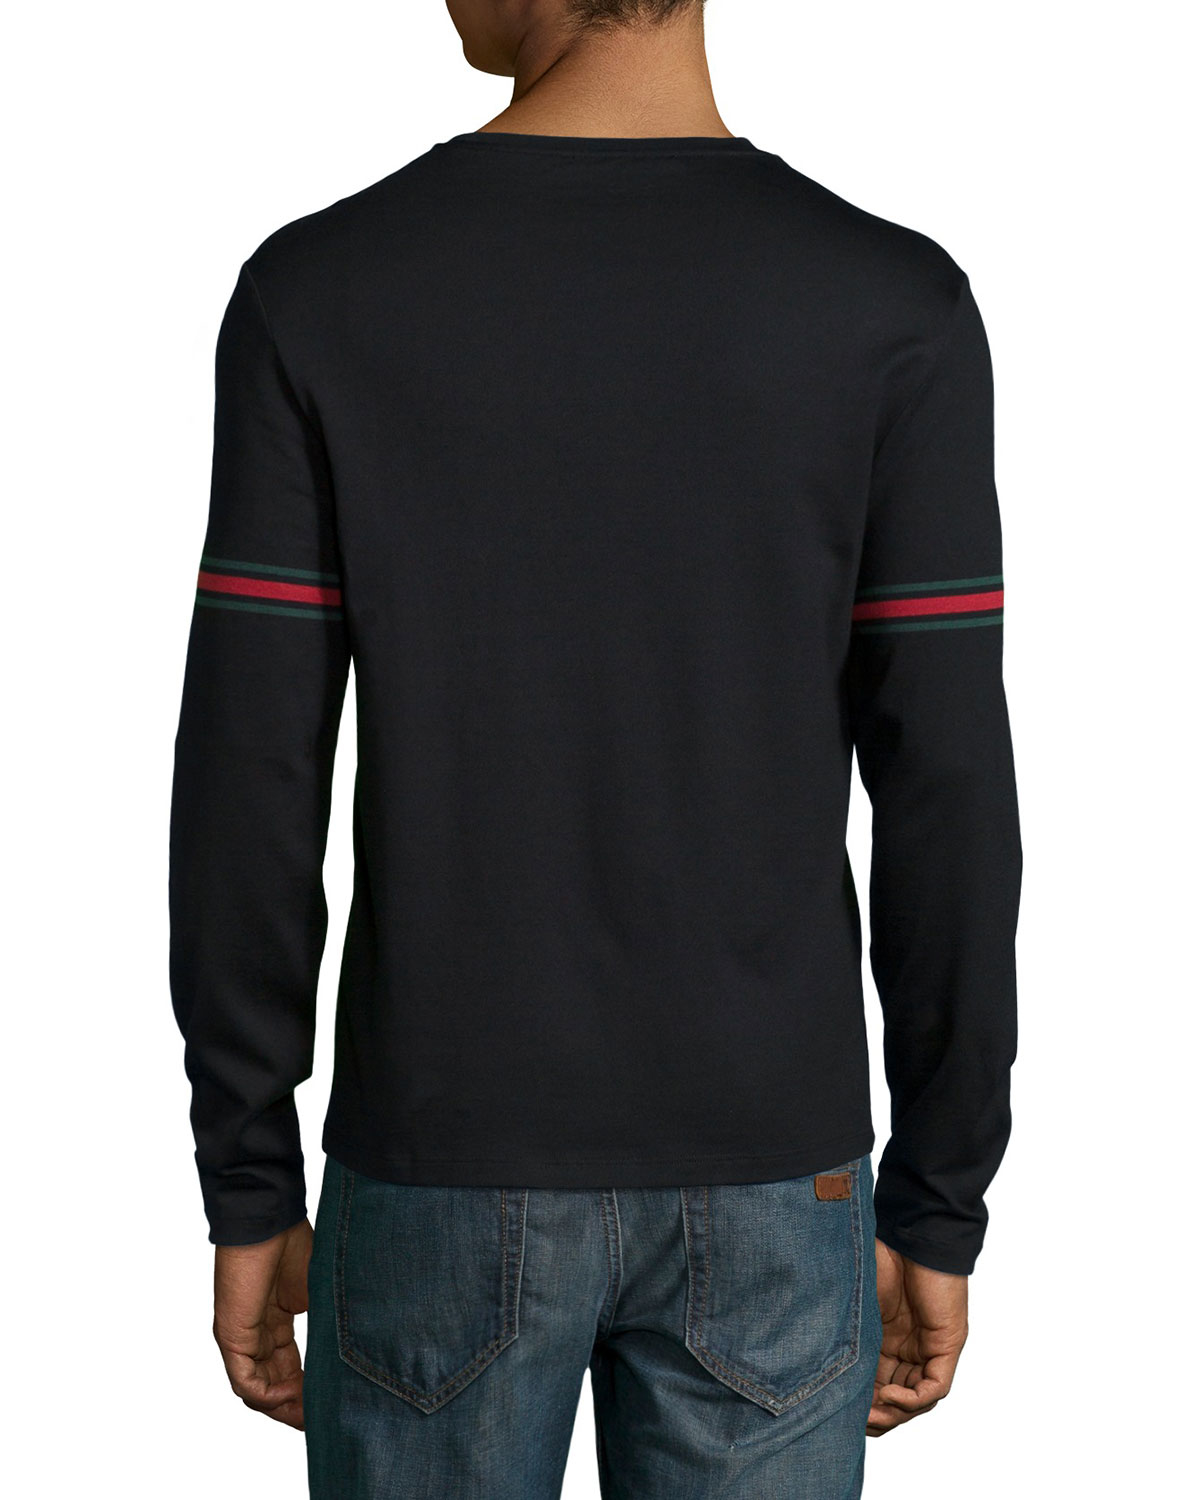 Gucci long sleeved t shirt with arm band details in black for Shirts for men with long arms